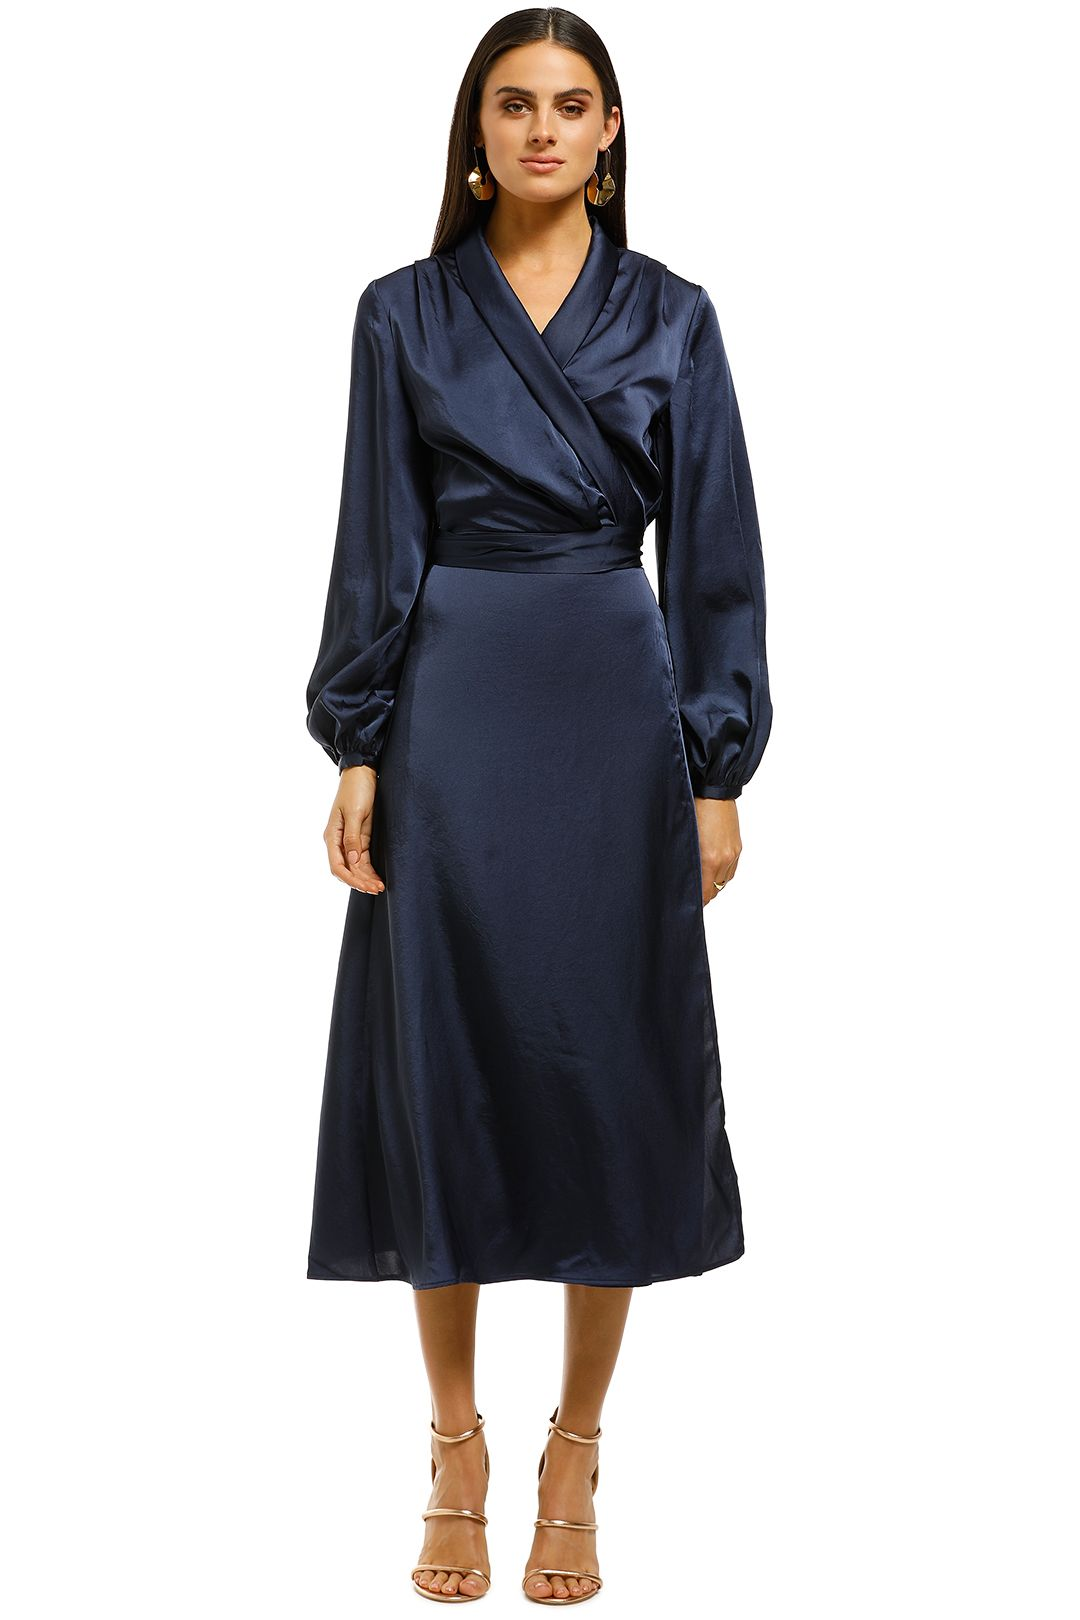 CMEO-Collective-Late-Thought-Midi-Dress-Navy-Front